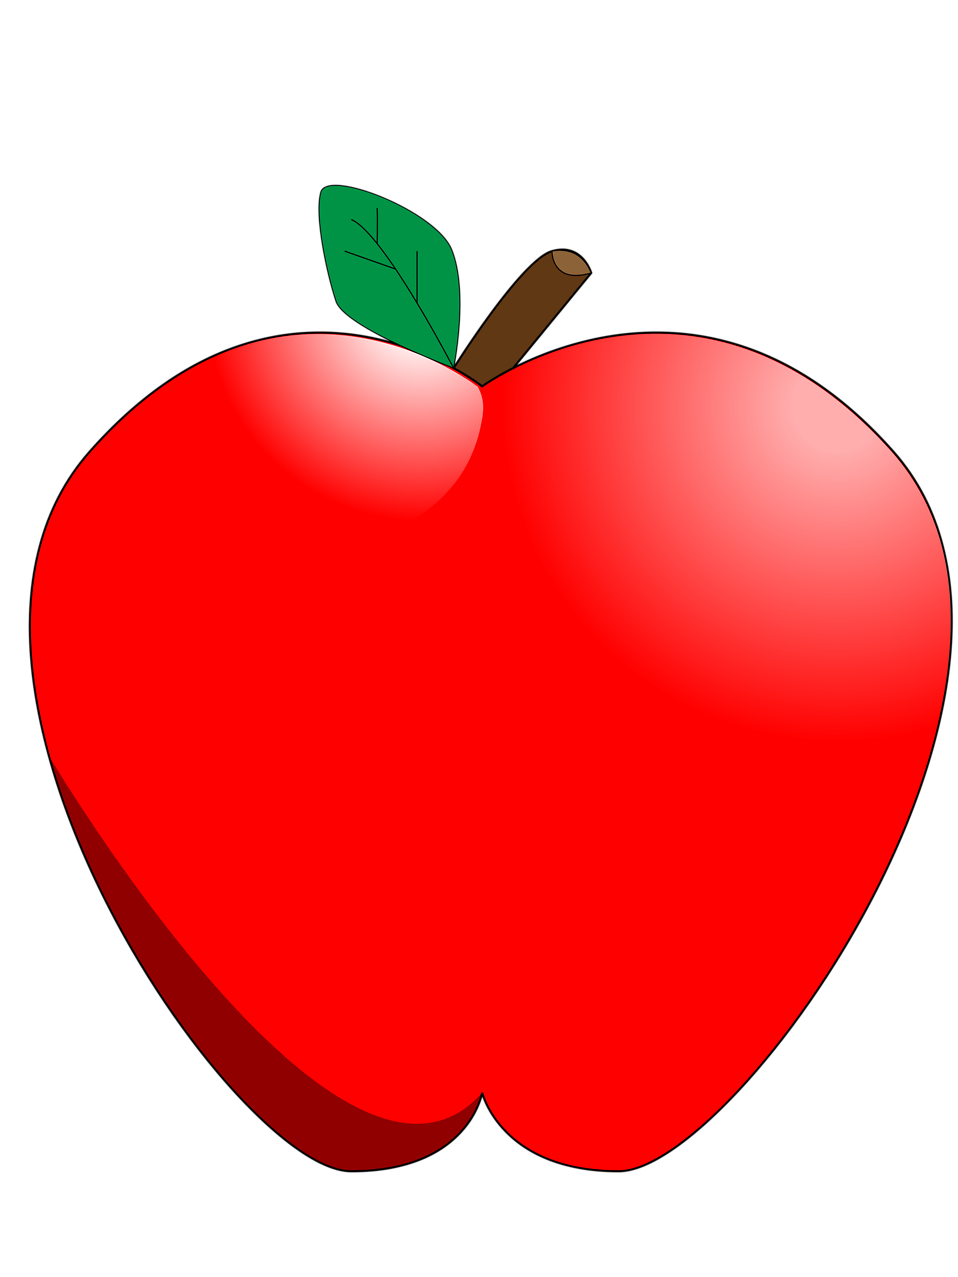 Apple free stock photo. Clipart library background